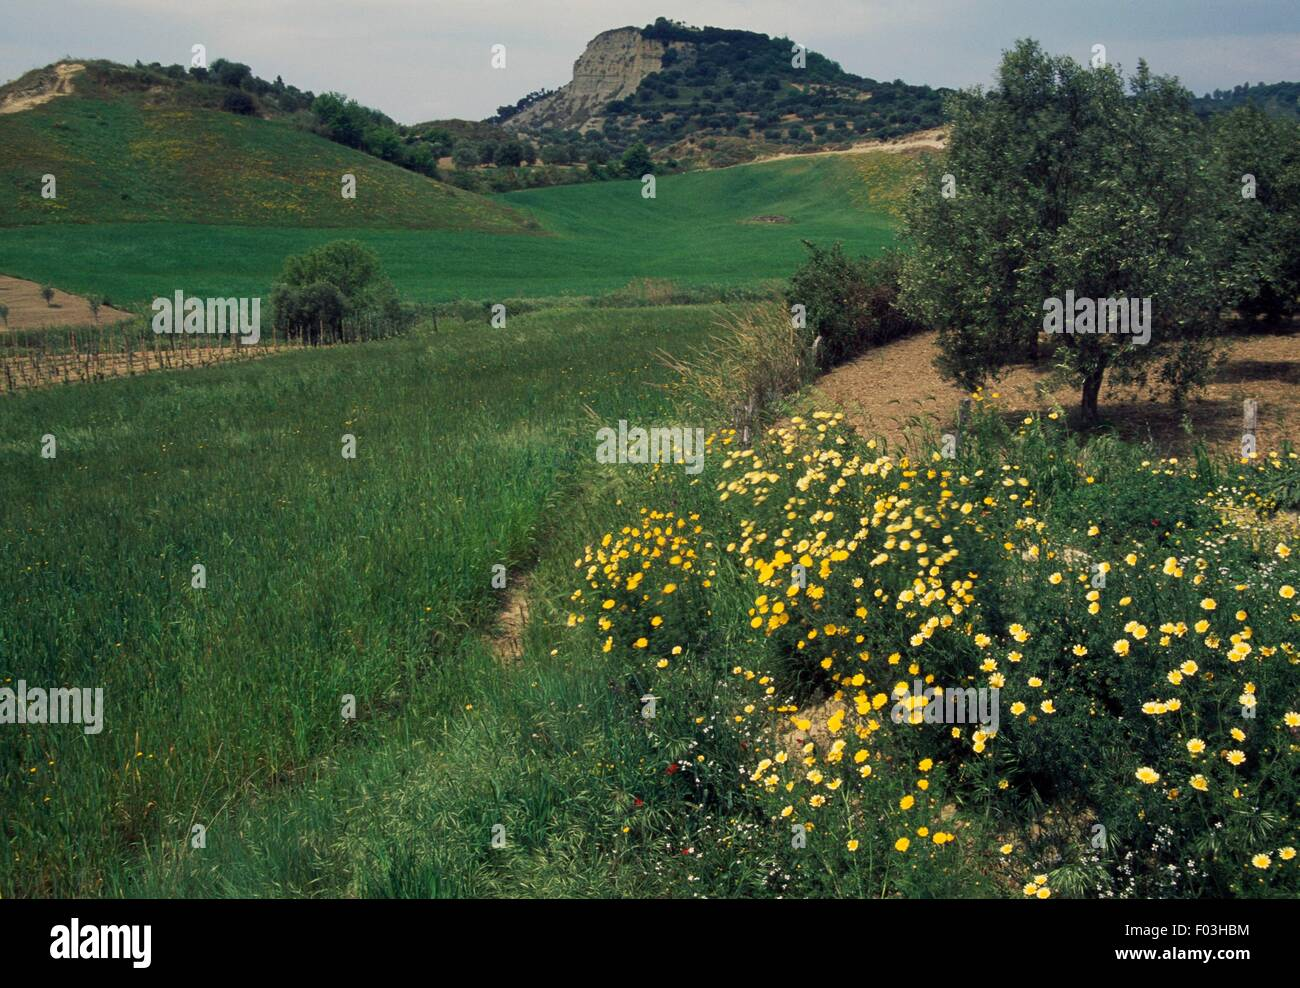 Agricultural landscape in the hinterland of Crotone, Calabria, Italy. - Stock Image